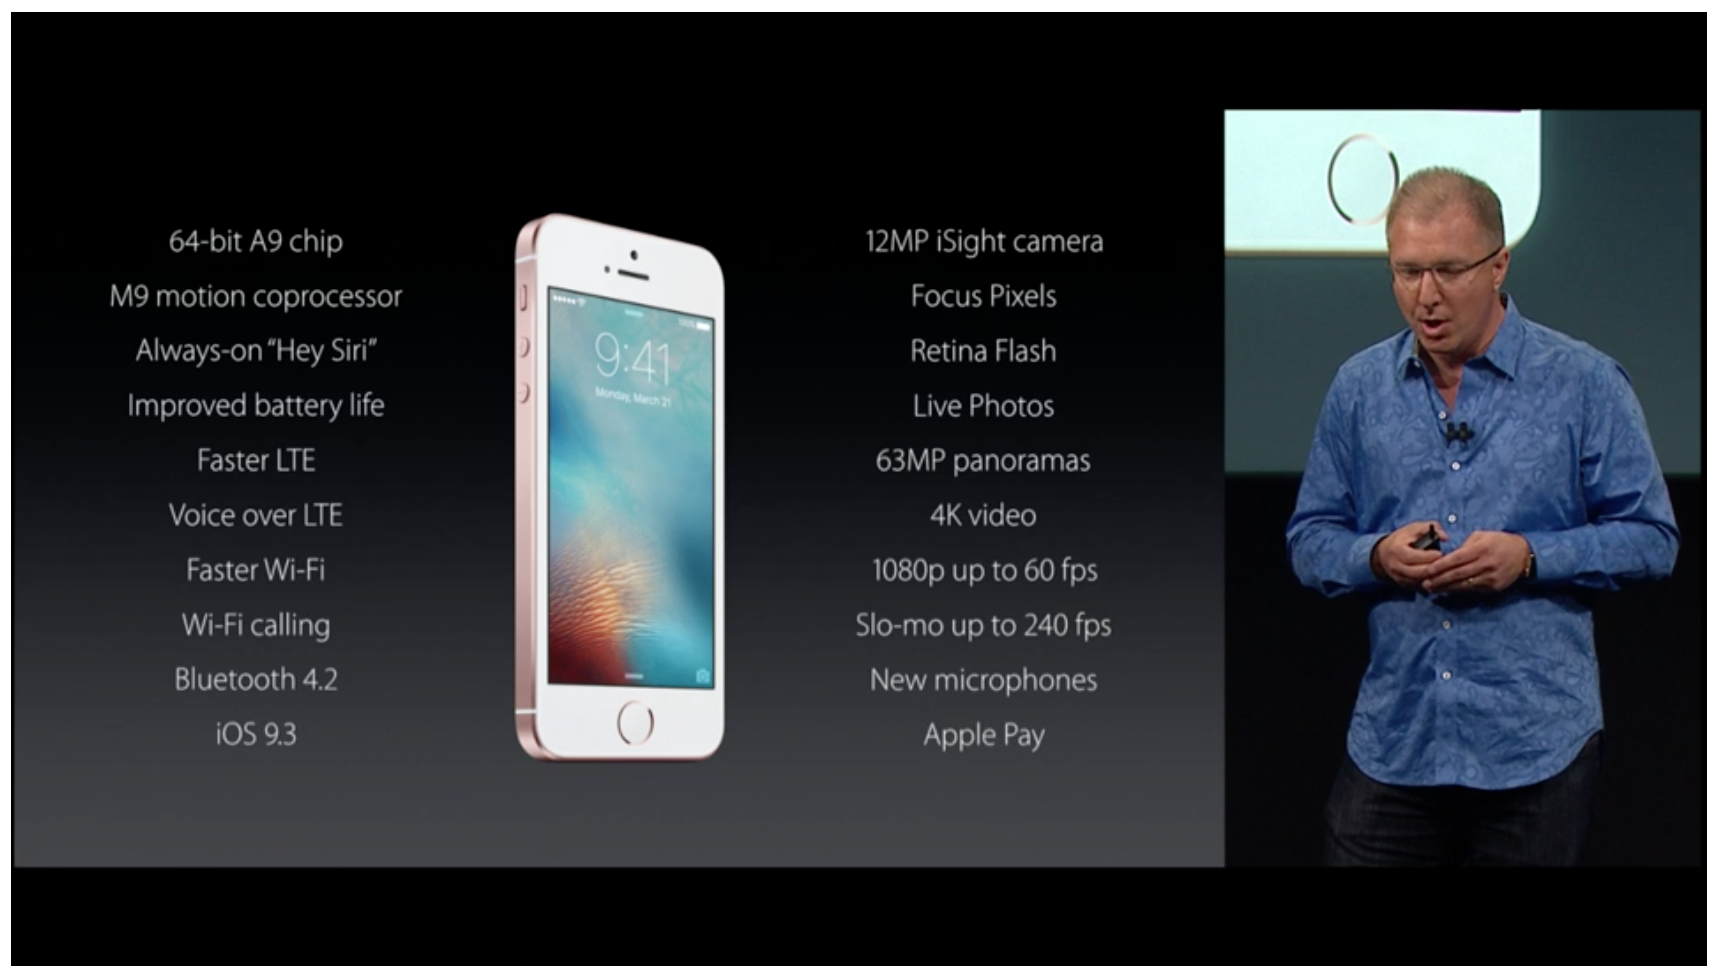 A summary of the features coming to the iPhone SE.